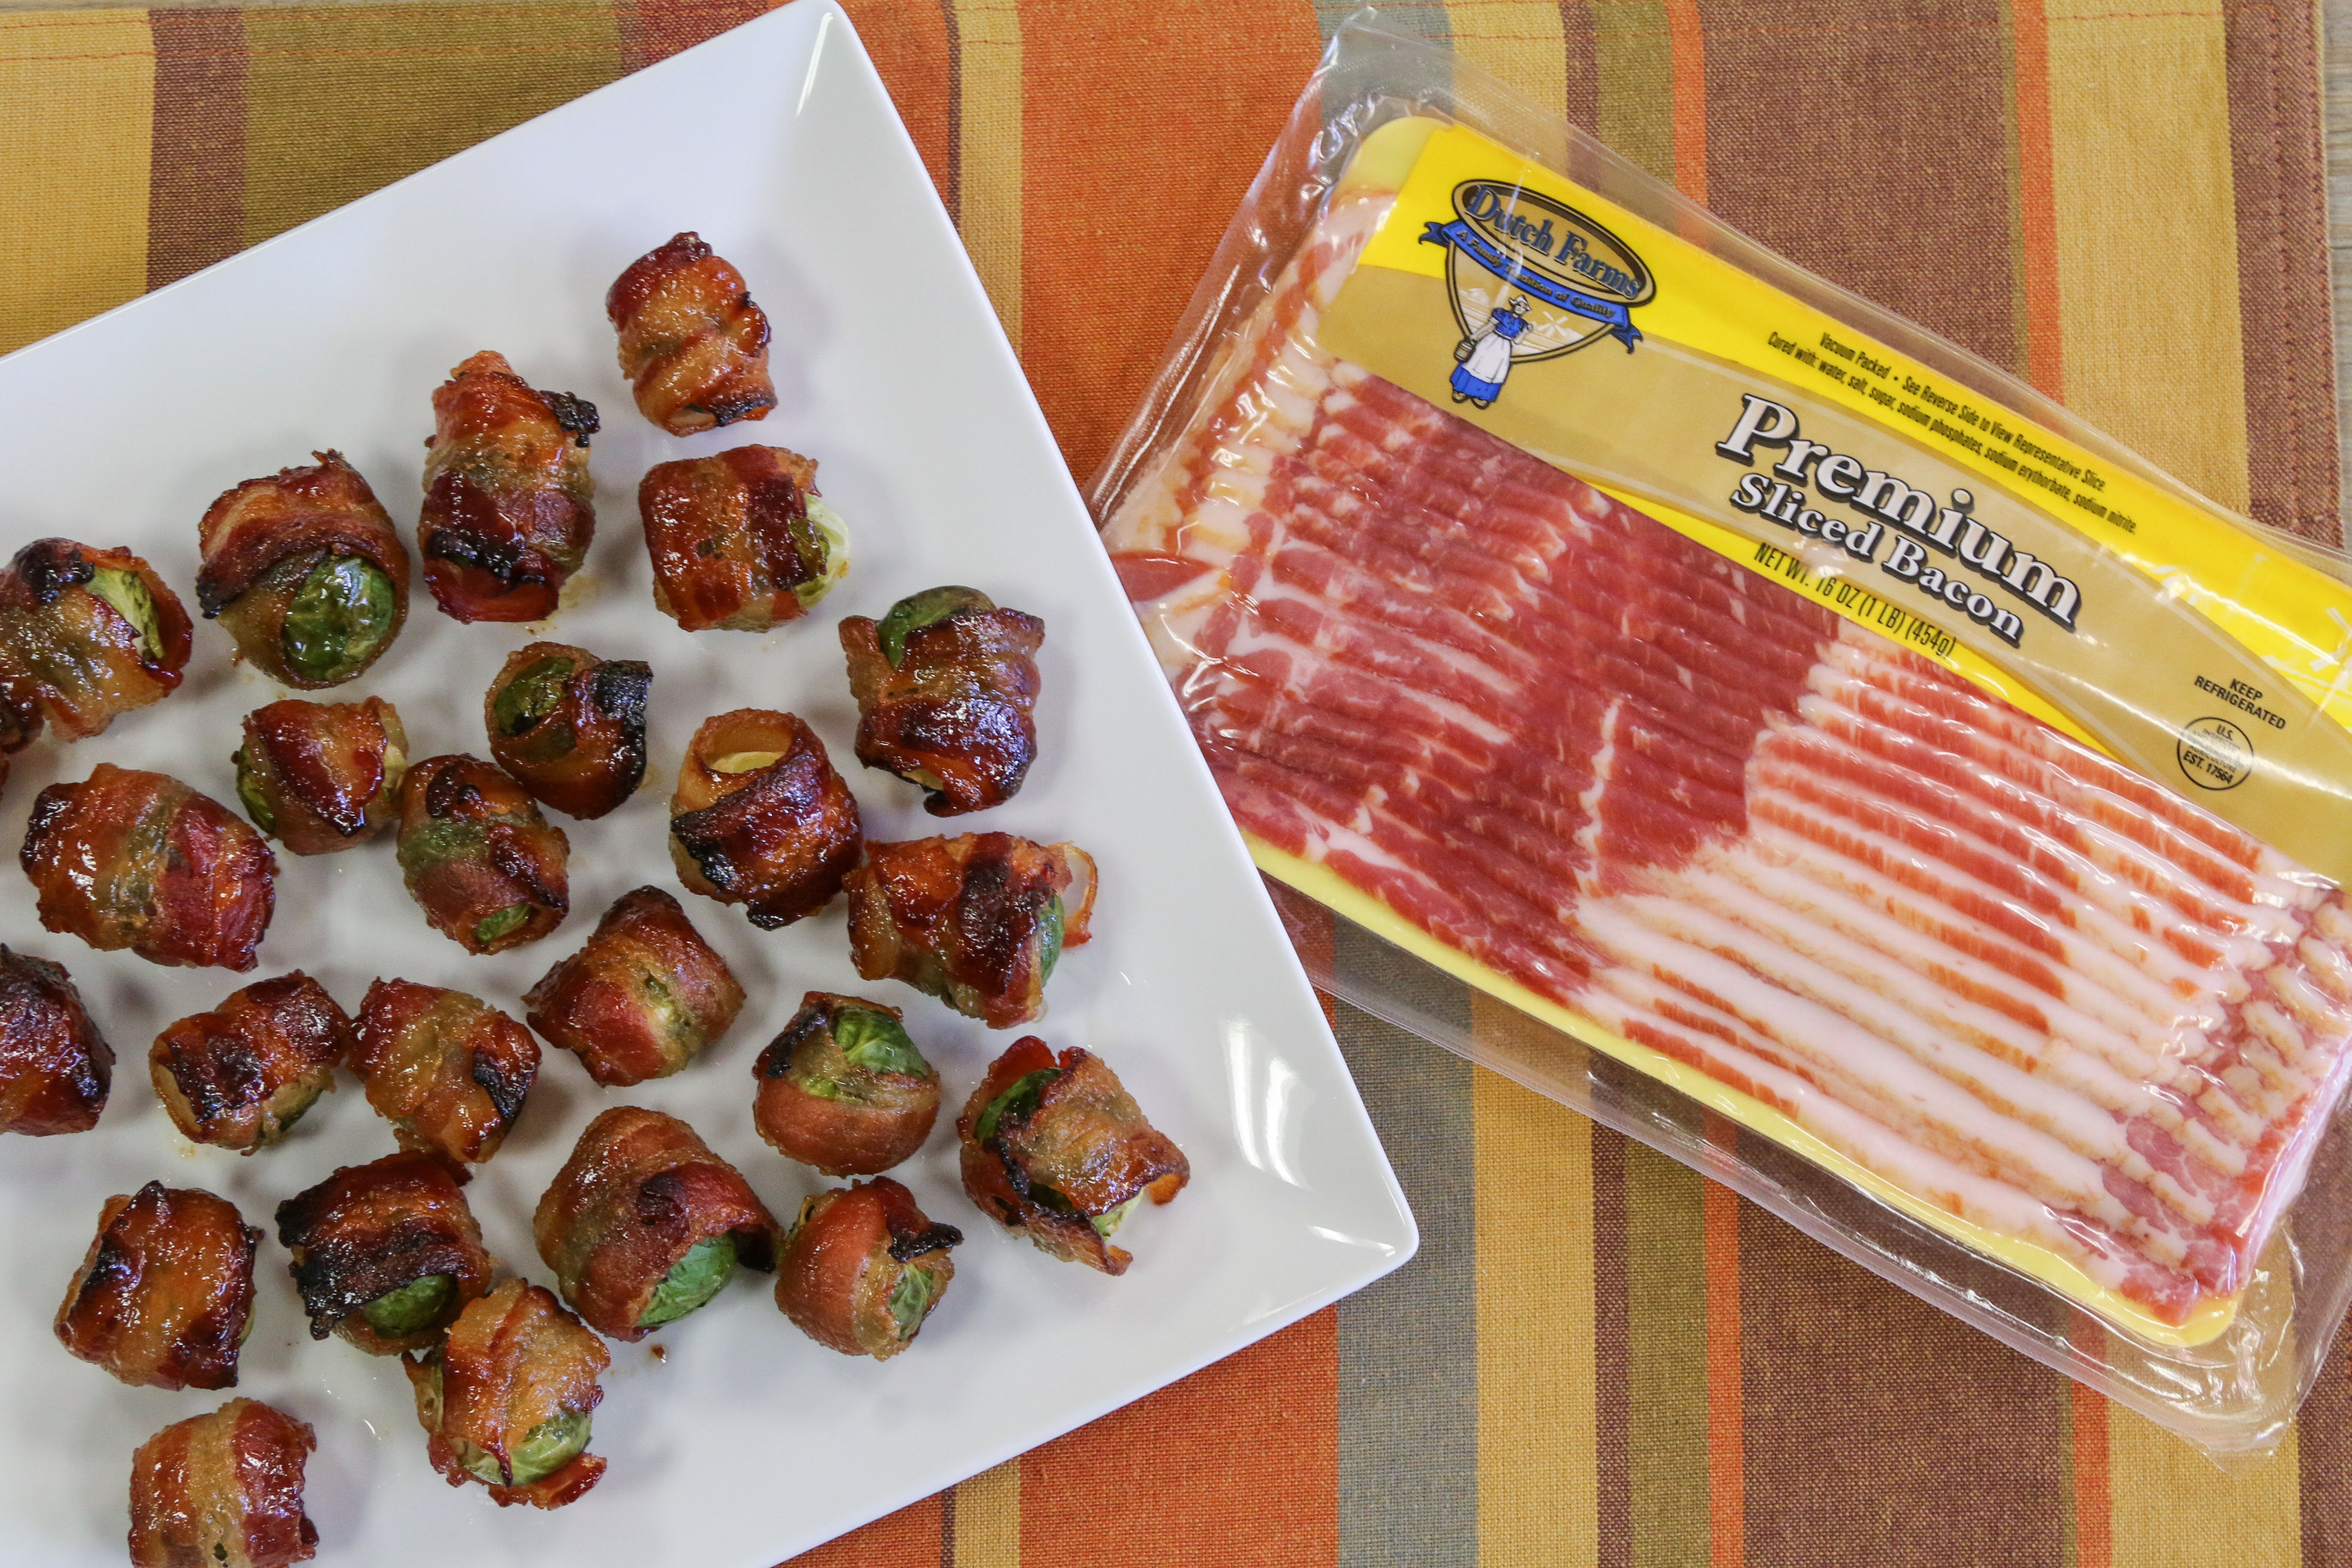 Dutch Farms 187 Bacon Wrapped Brussels Sprouts